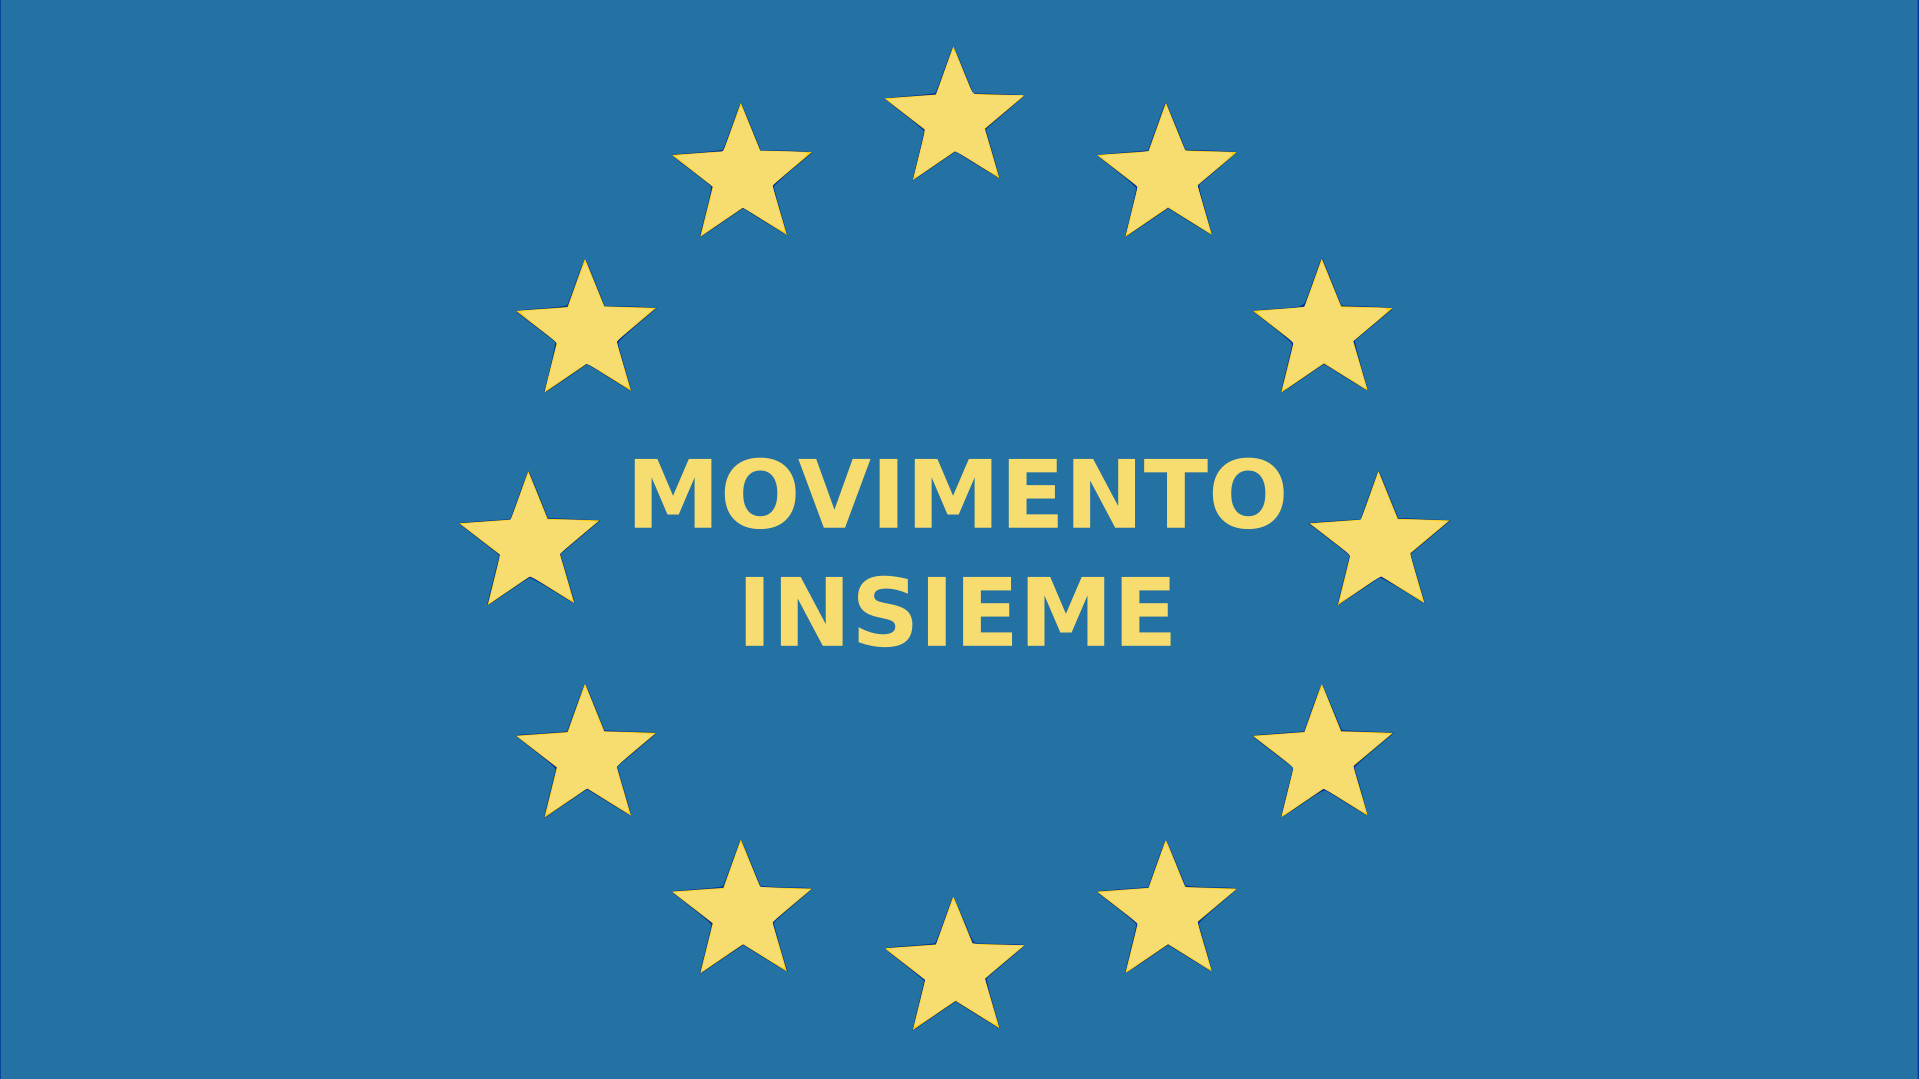 Declaration of the Peoples' Movement for the European Federal Union